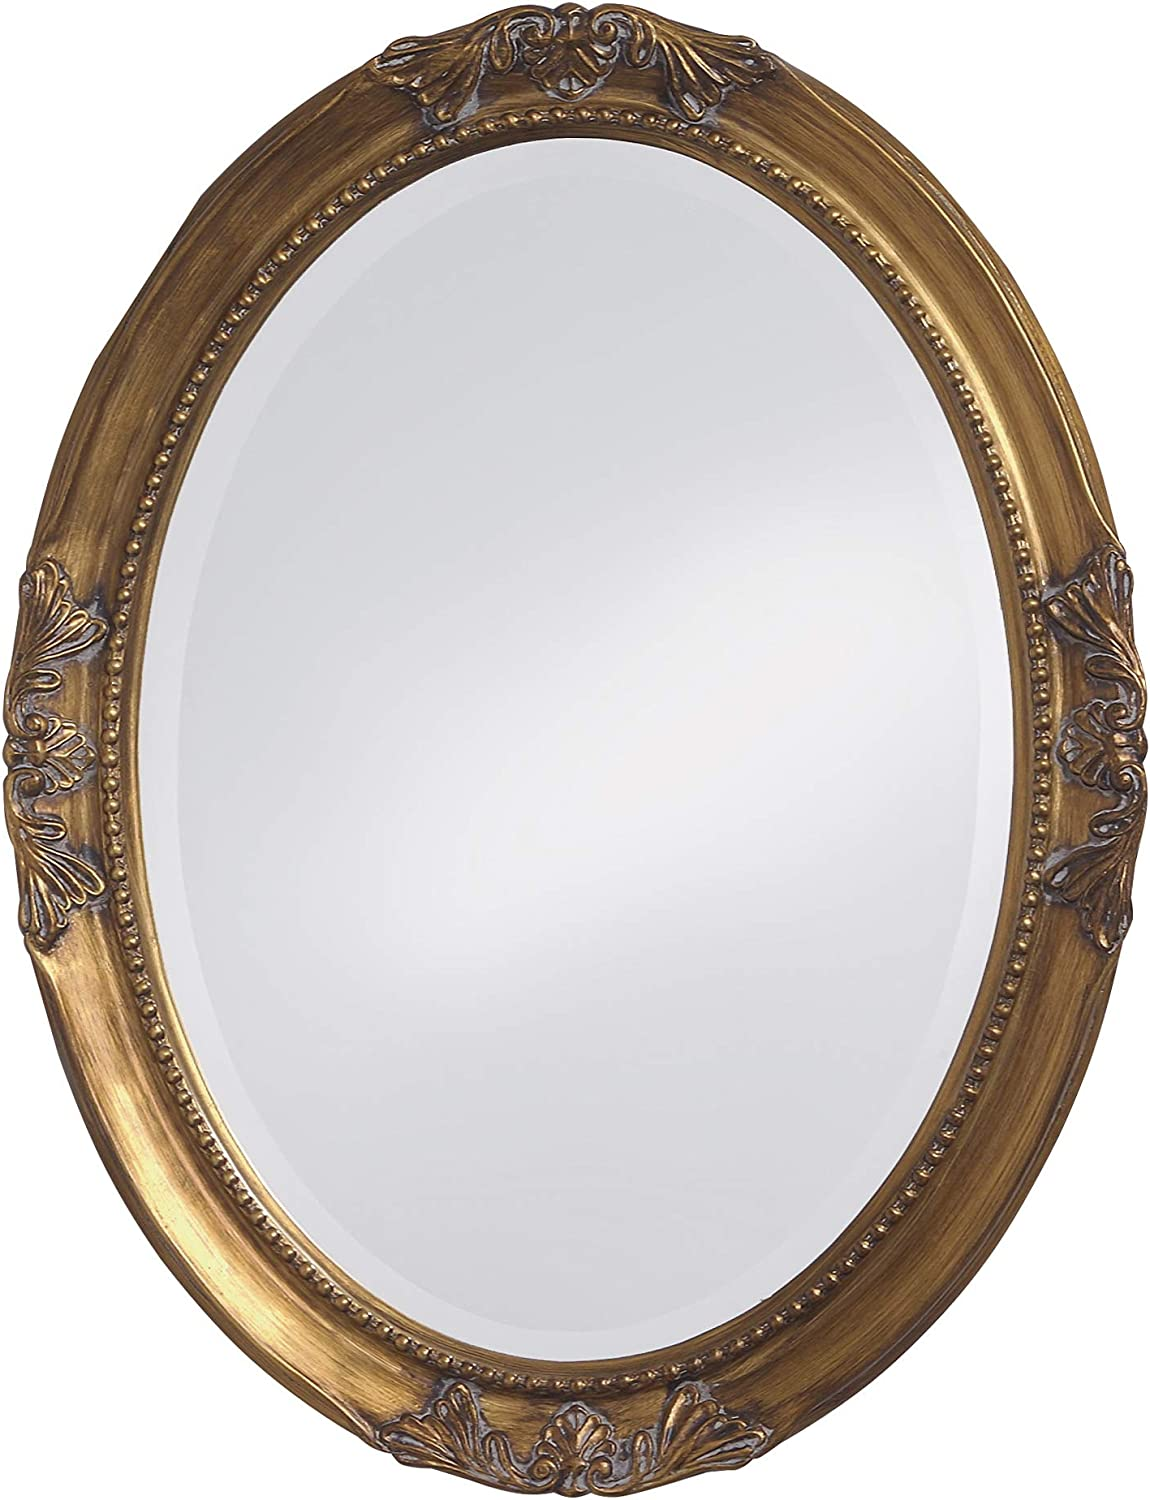 Howard Elliott Queen Ann Oval Hanging Wall Mirror, Beveled, Vanity, Antique Gold Leaf, 25 x 33 Inch